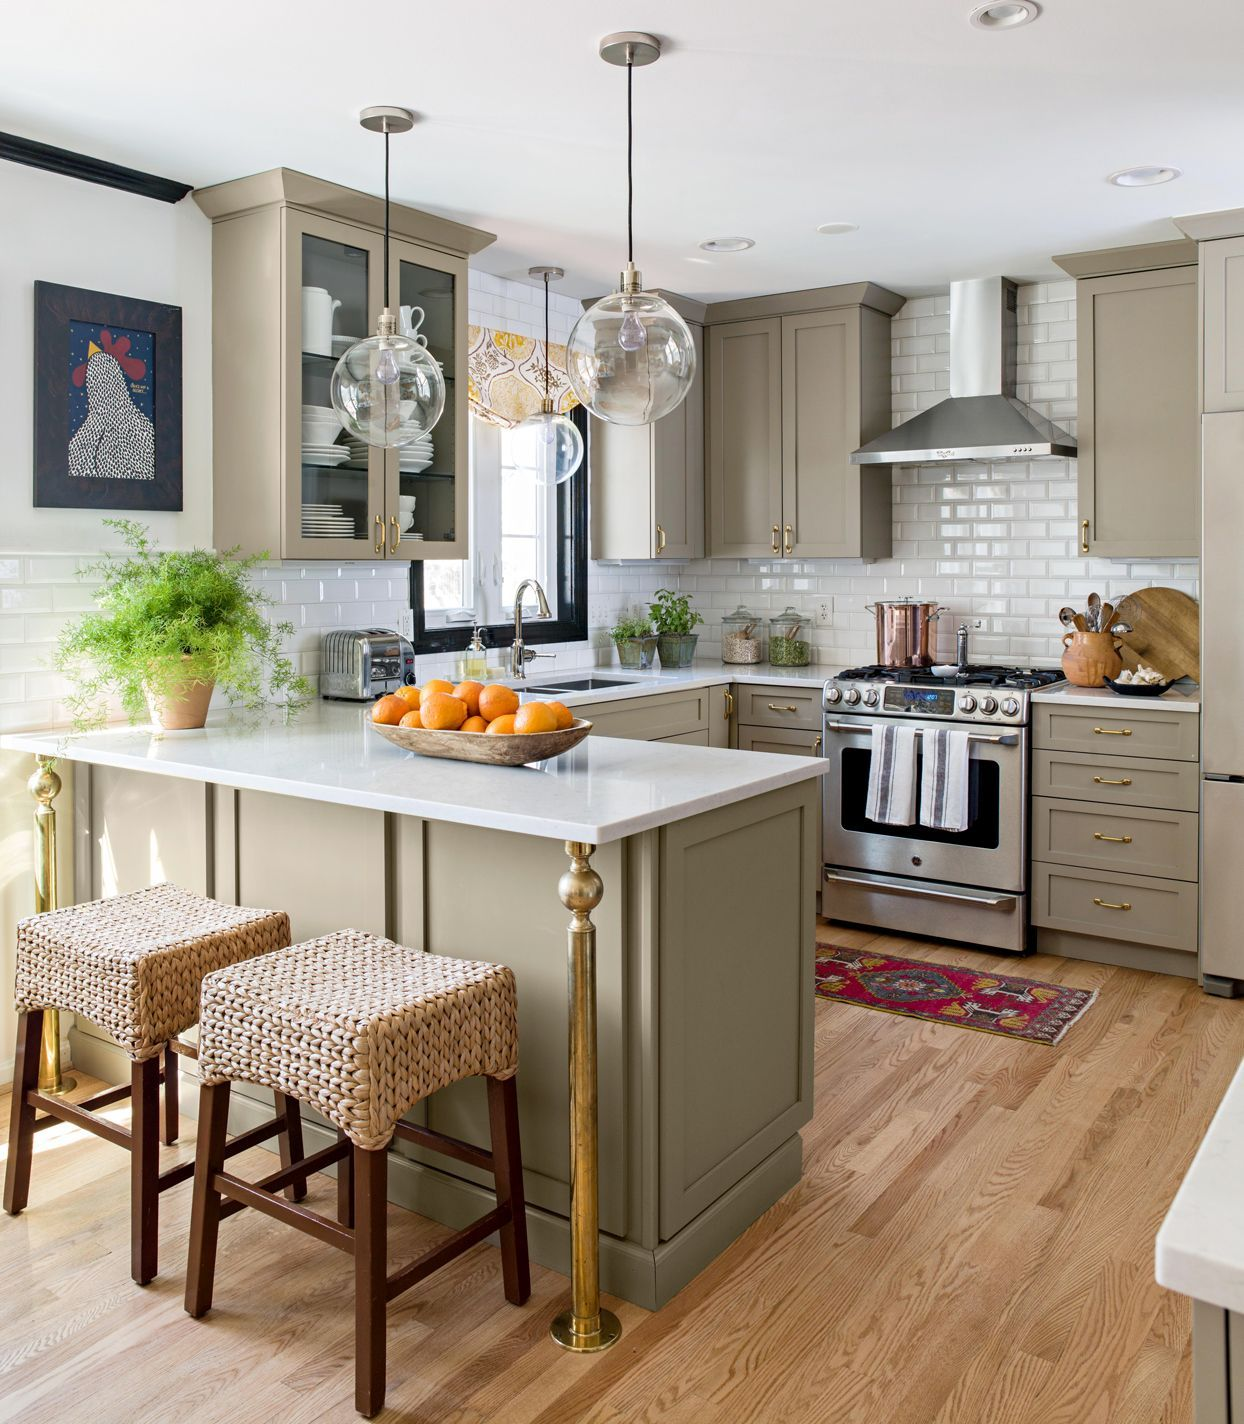 Top 2021 Kitchen Trends with Long-Lasting Style